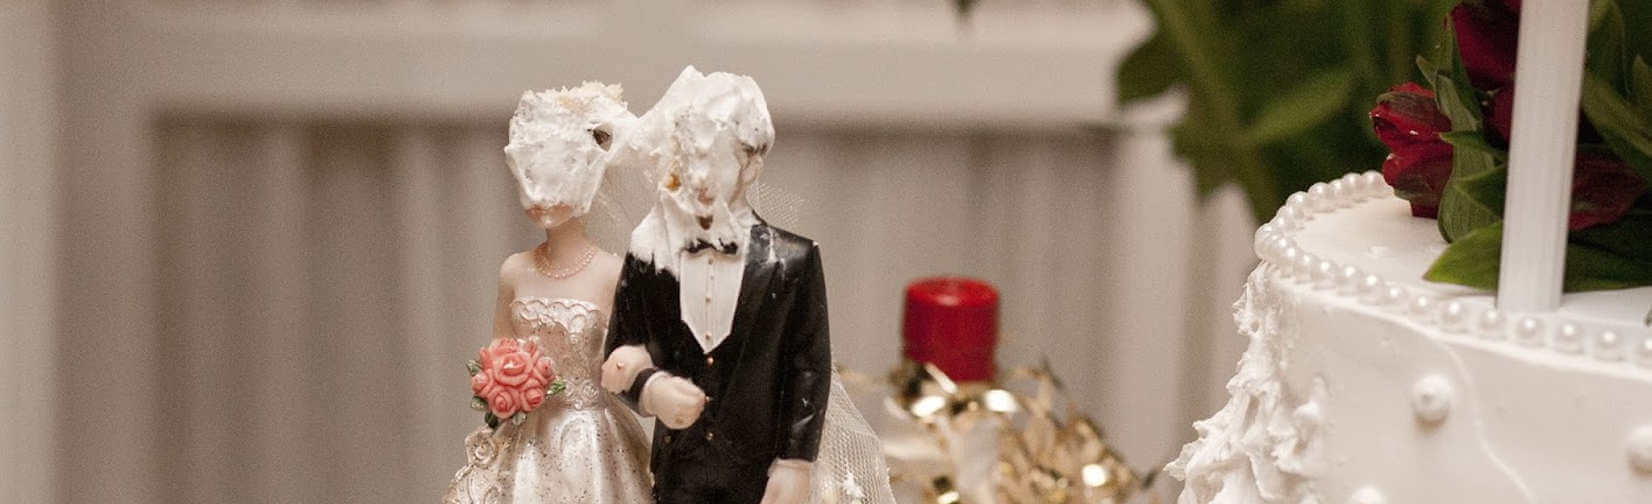 What you should NEVER do at a wedding